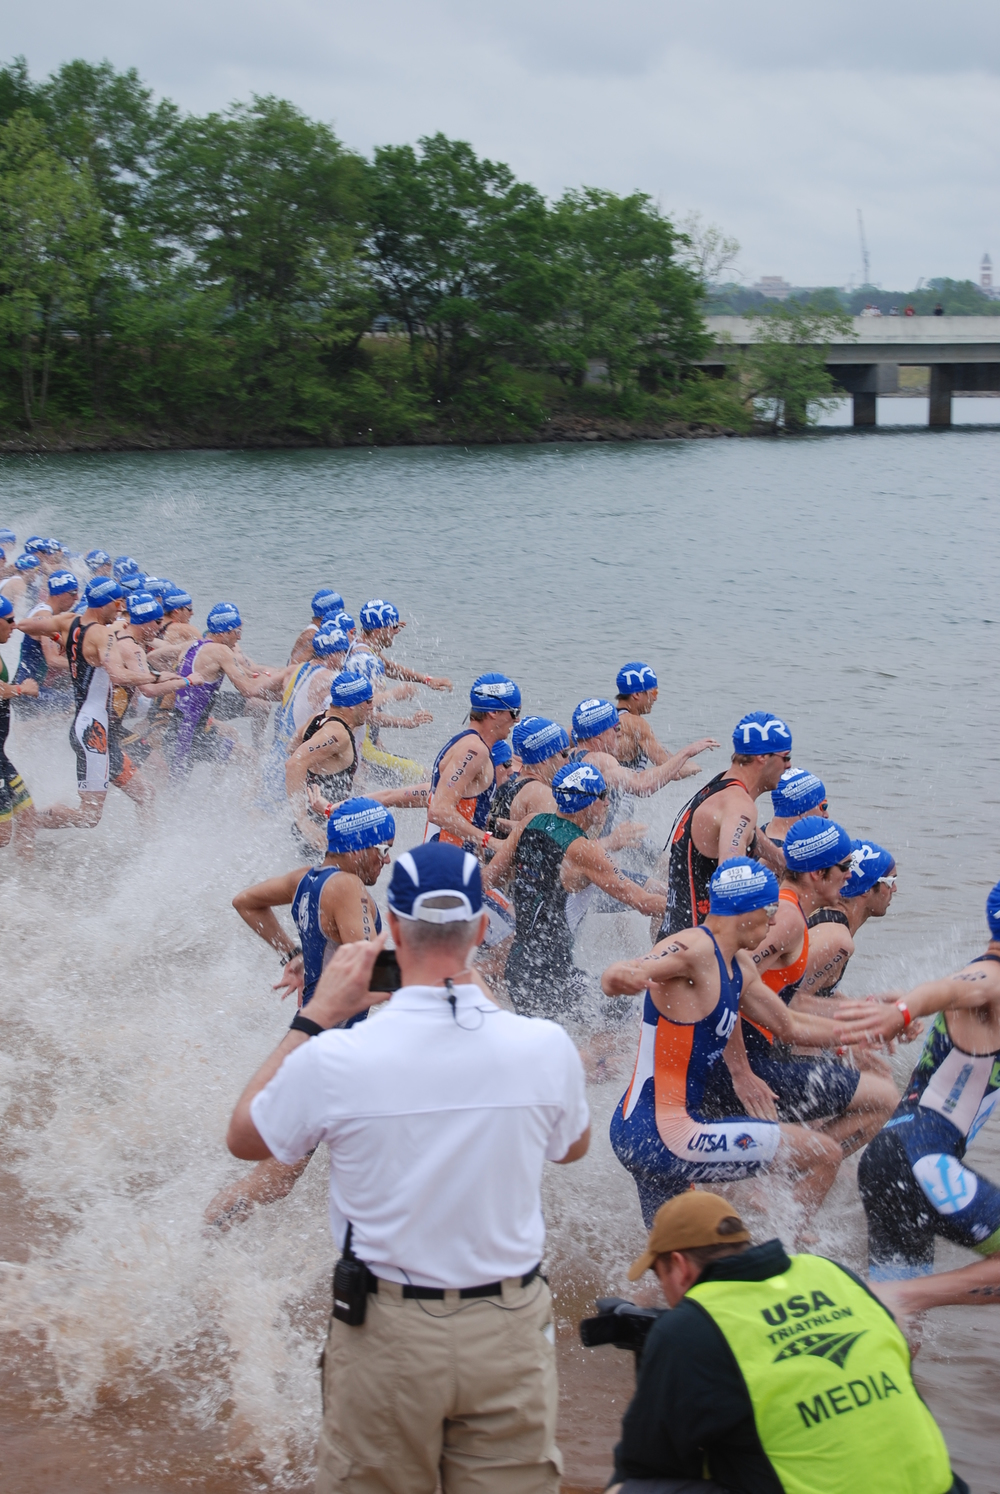 Start of the race and I am 4th from the right. Next to JR Creekmore, who I grew up swimming and running with